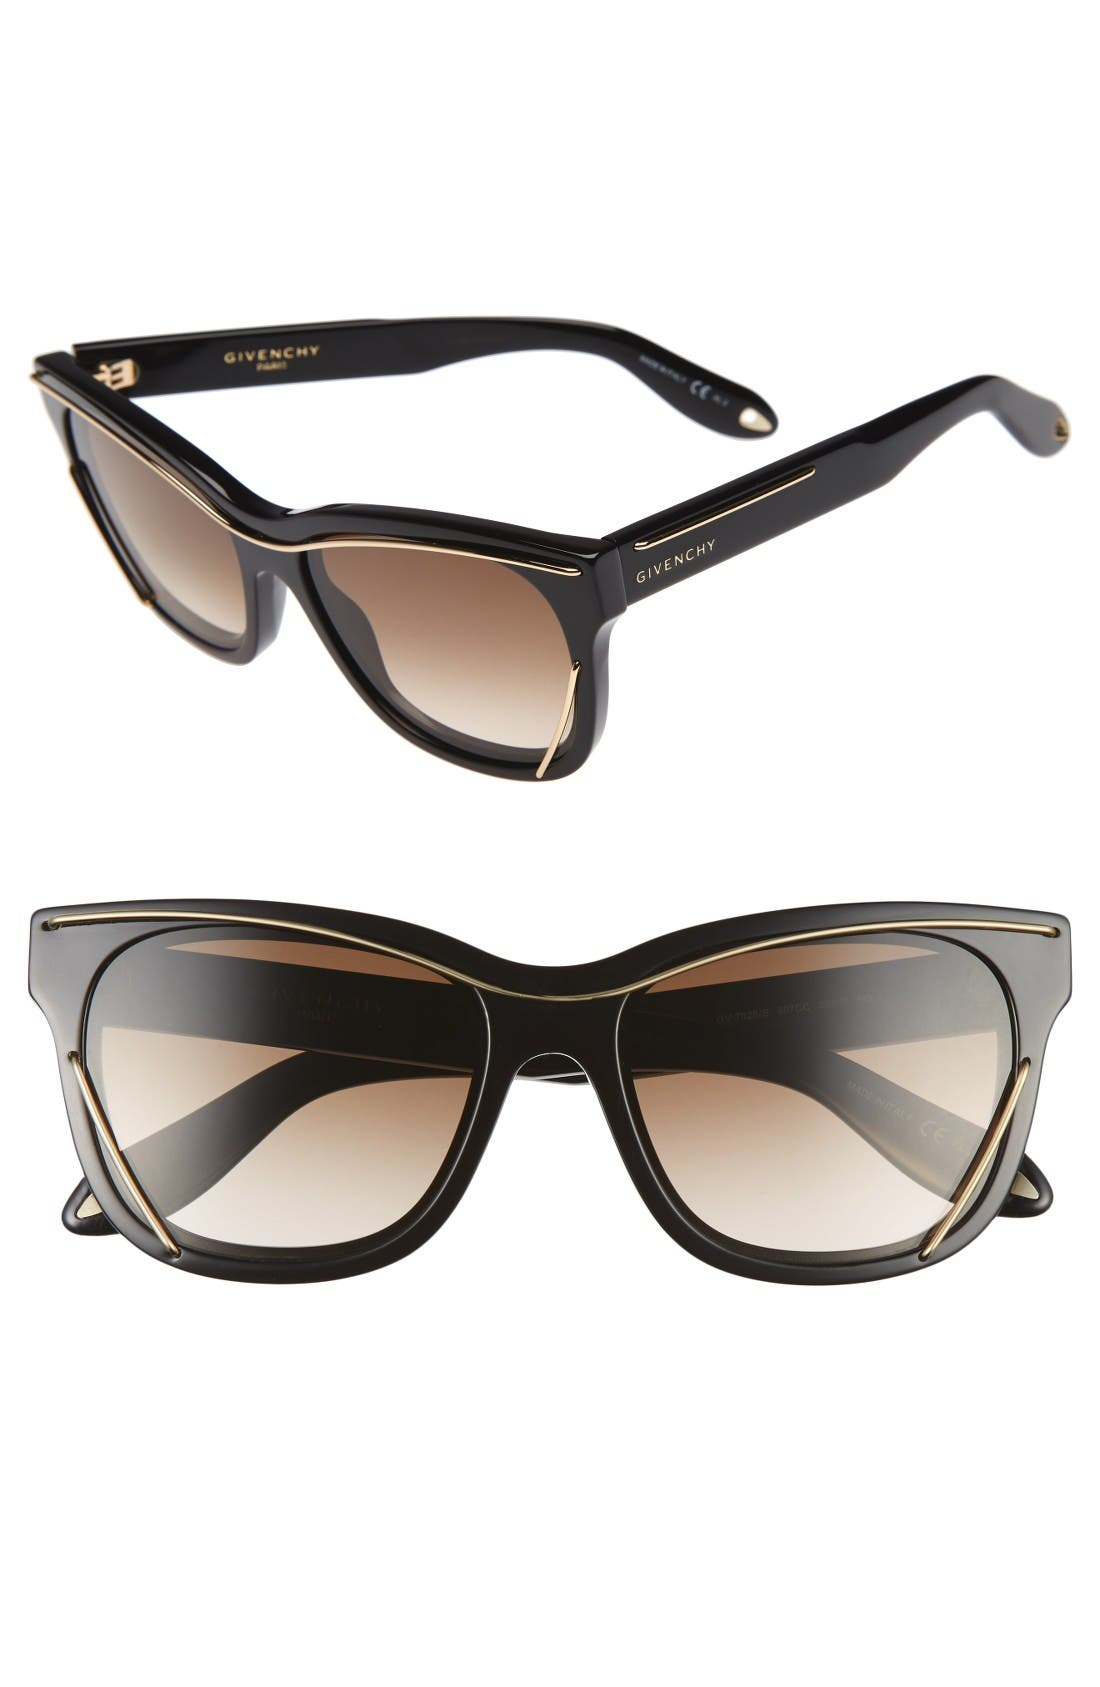 Main Image - Givenchy 56mm Cat Eye Sunglasses